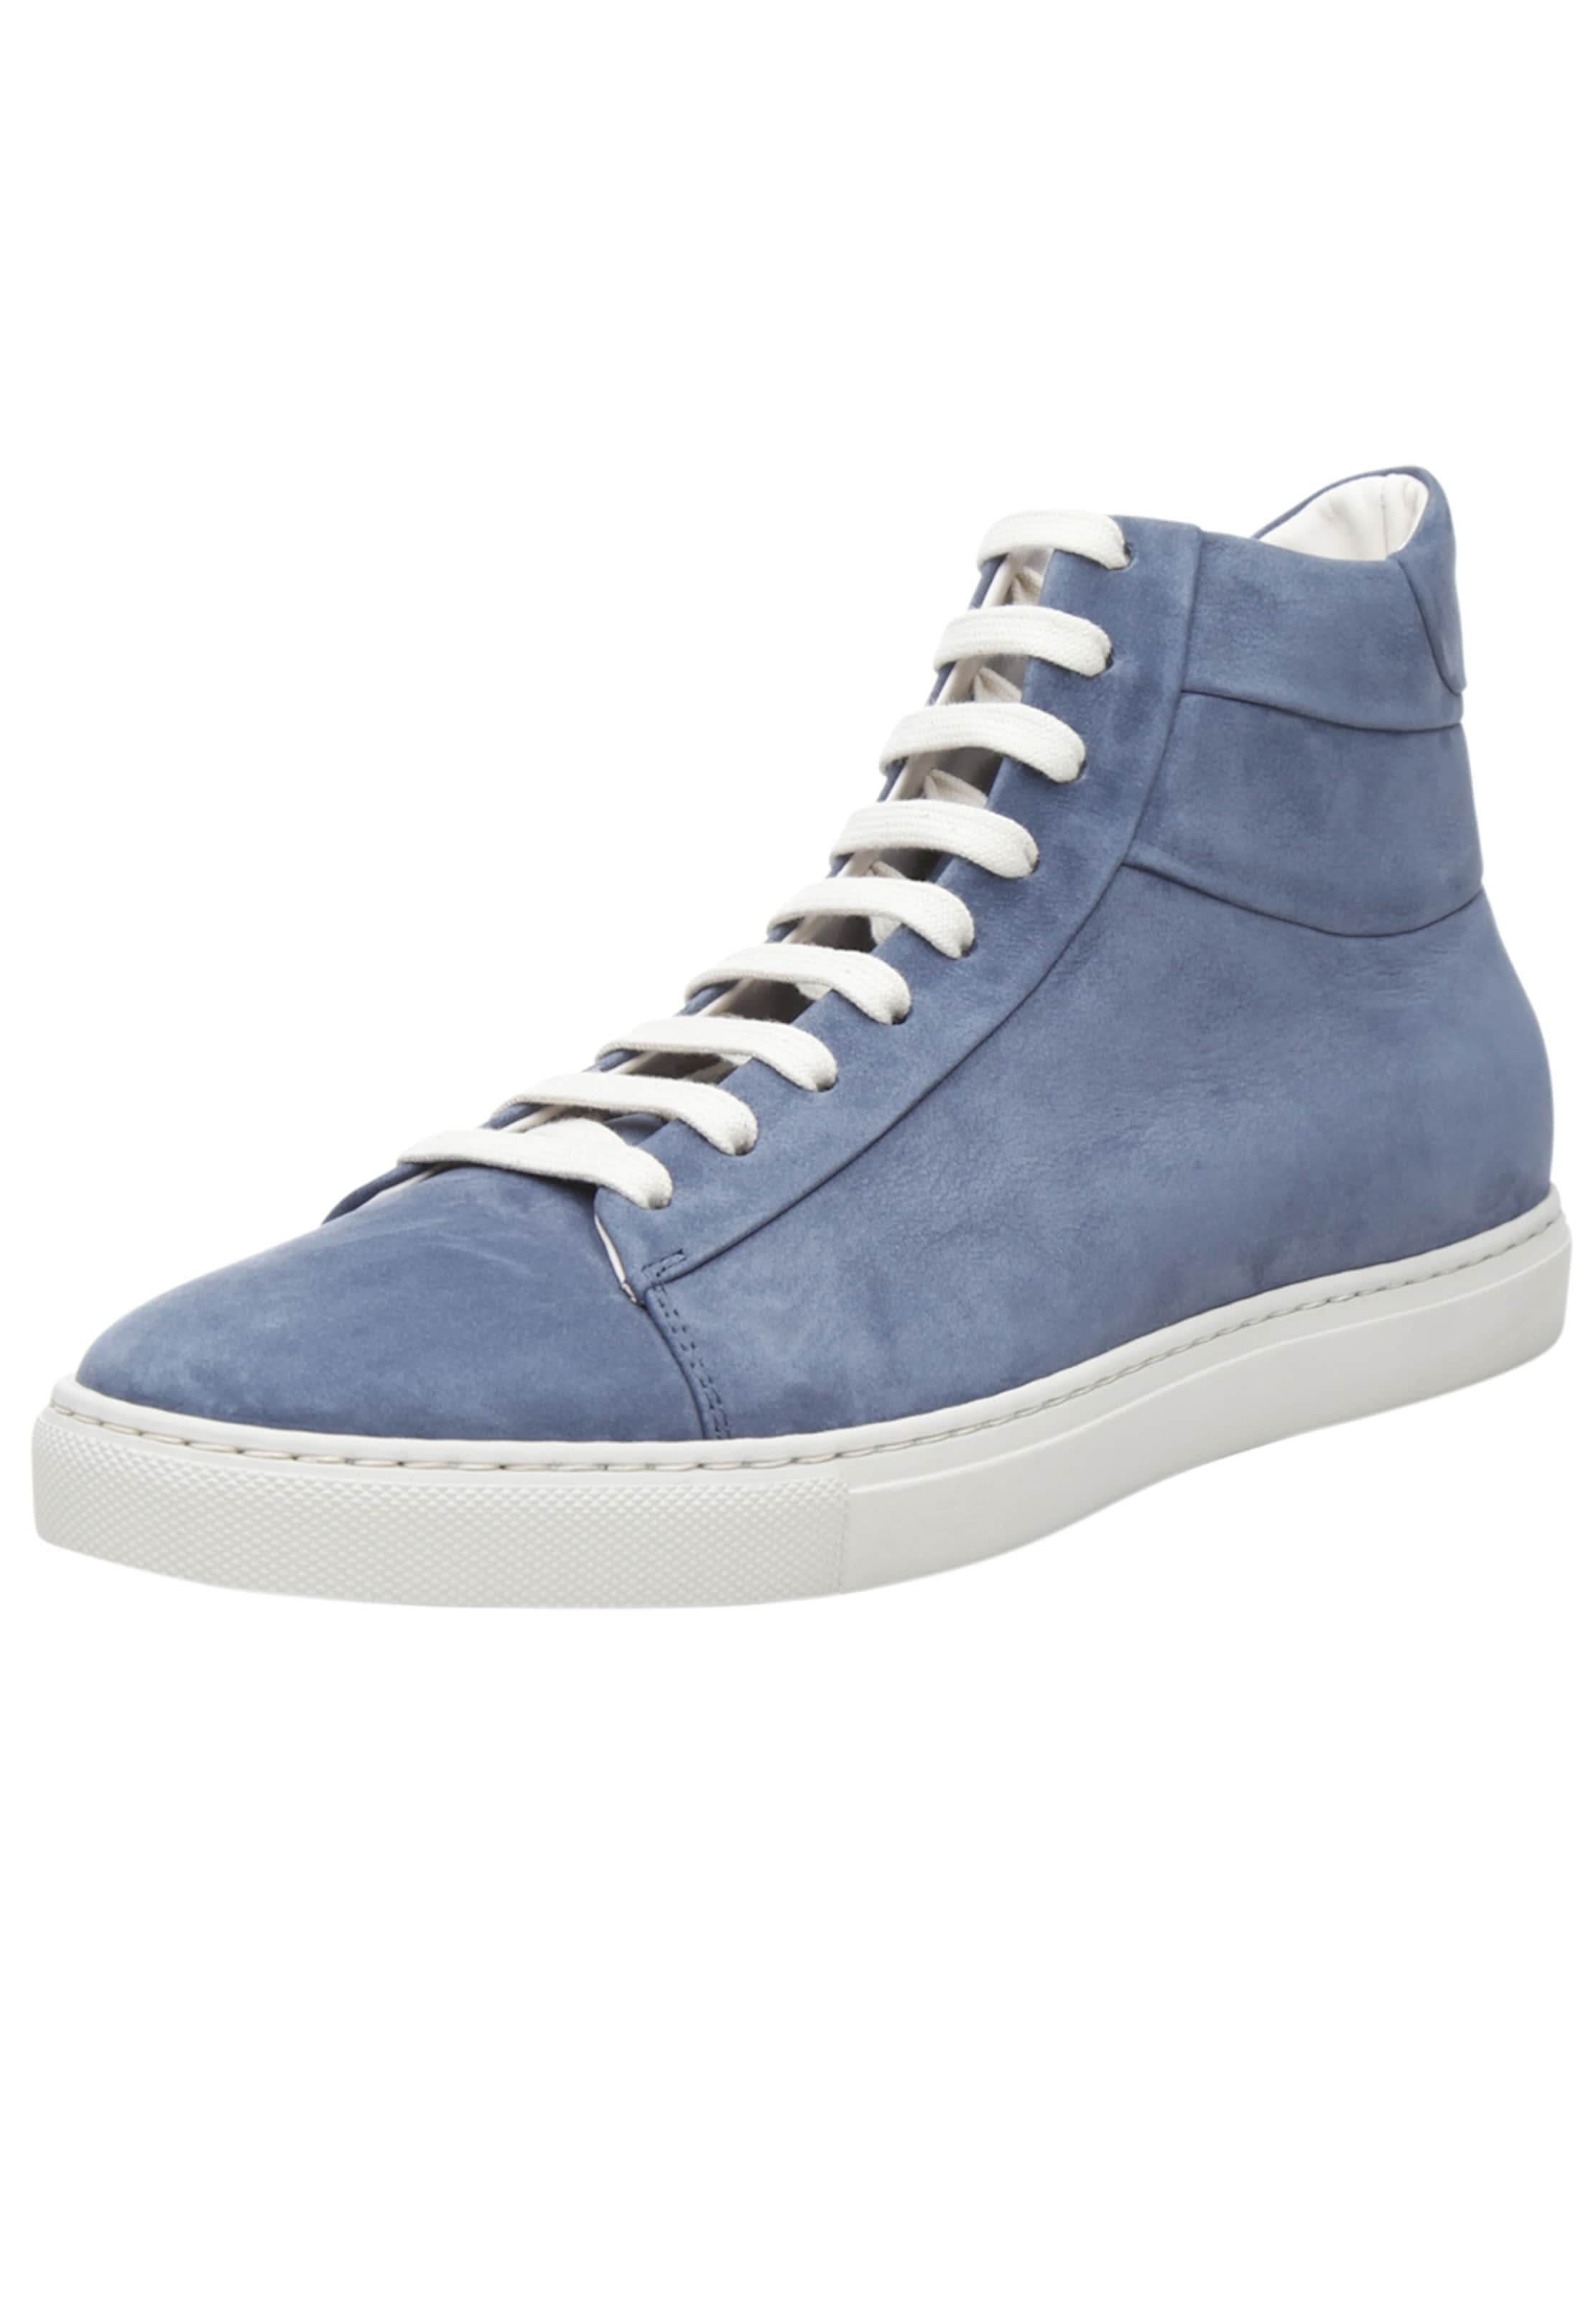 SHOEPASSION Sneaker  No. 42 MS